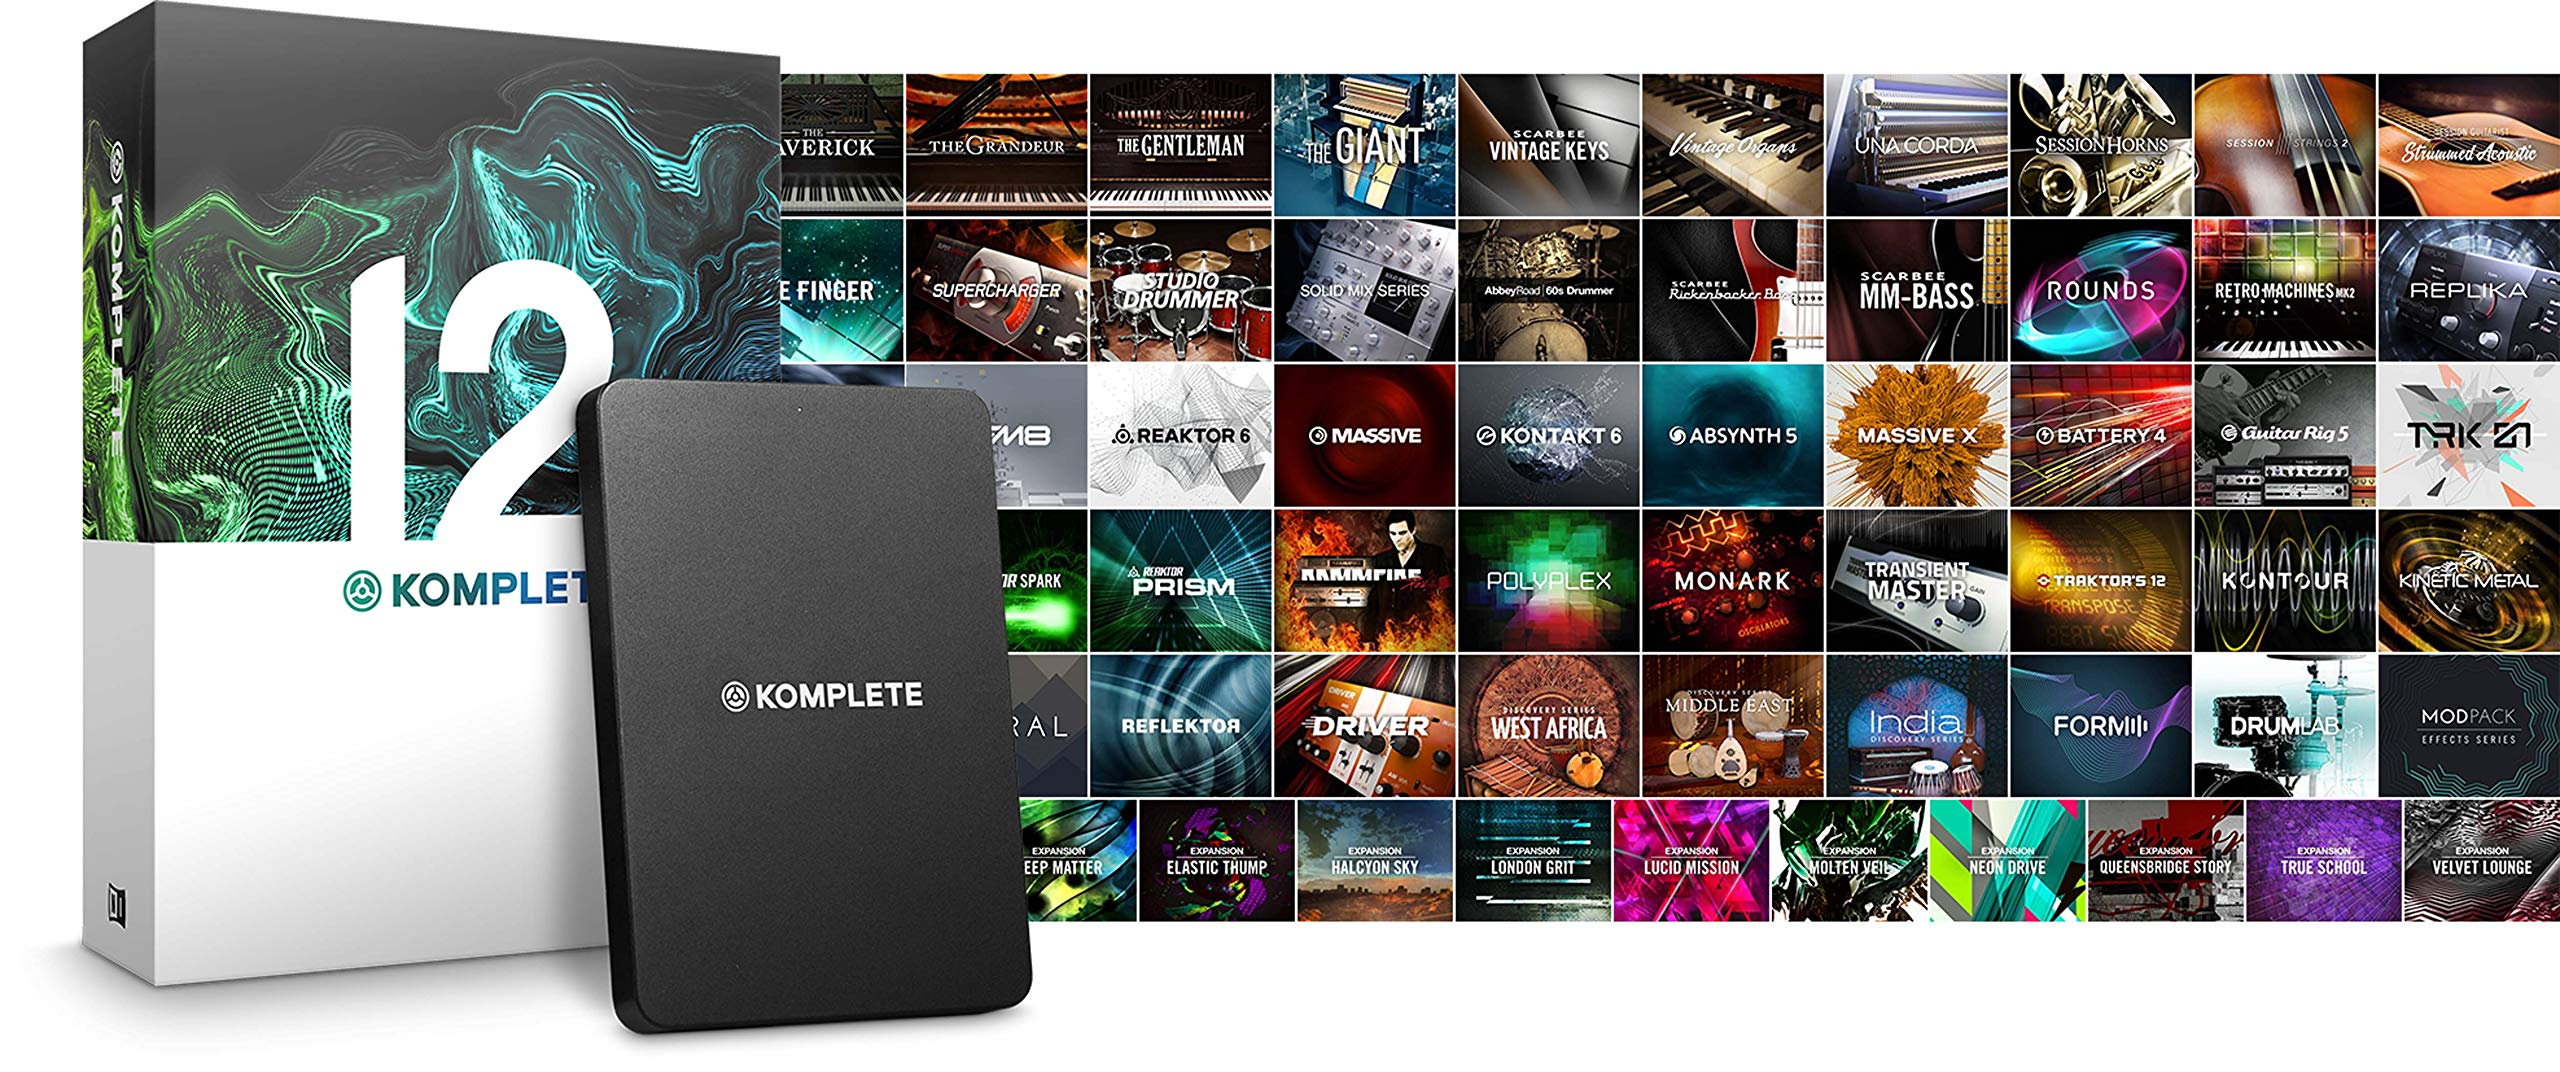 Native Instruments Komplete 12 Software Suite by Native Instruments